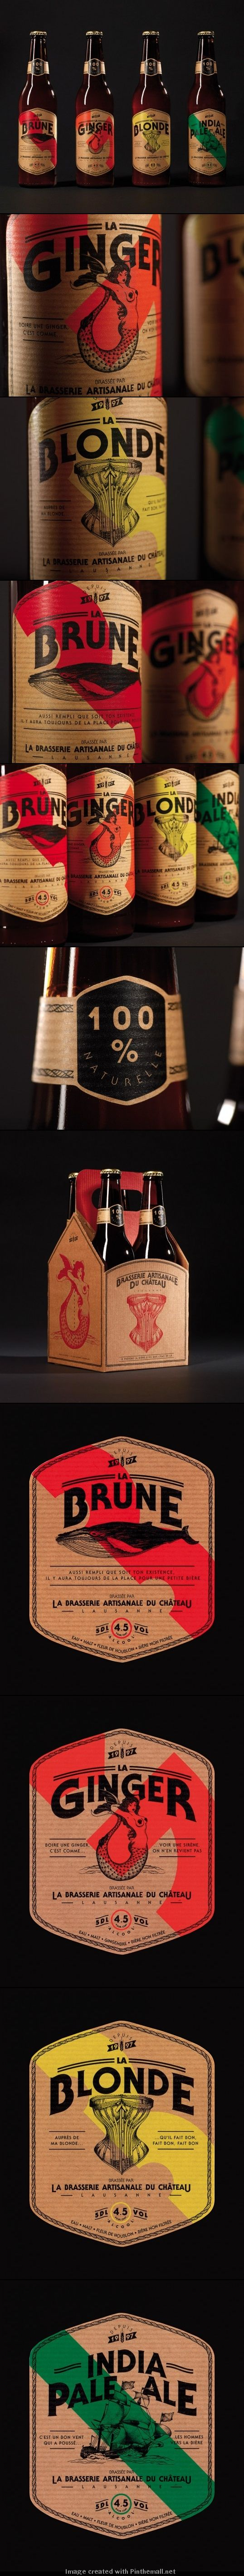 pinterest.com/fra411 #packaging #beer - La Brasserie du Château